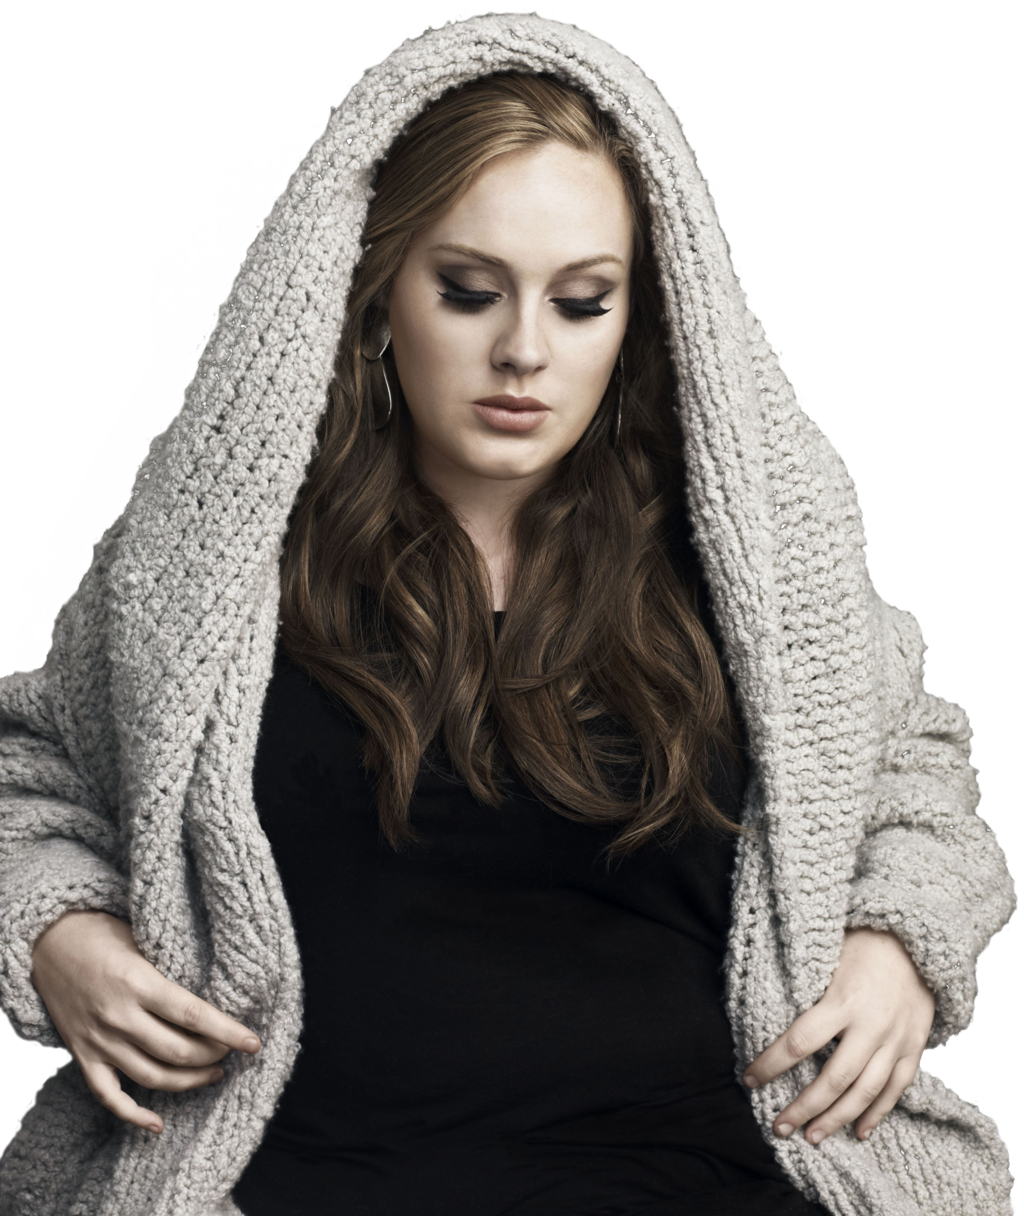 Adele Png Clipart - Adele, Transparent background PNG HD thumbnail